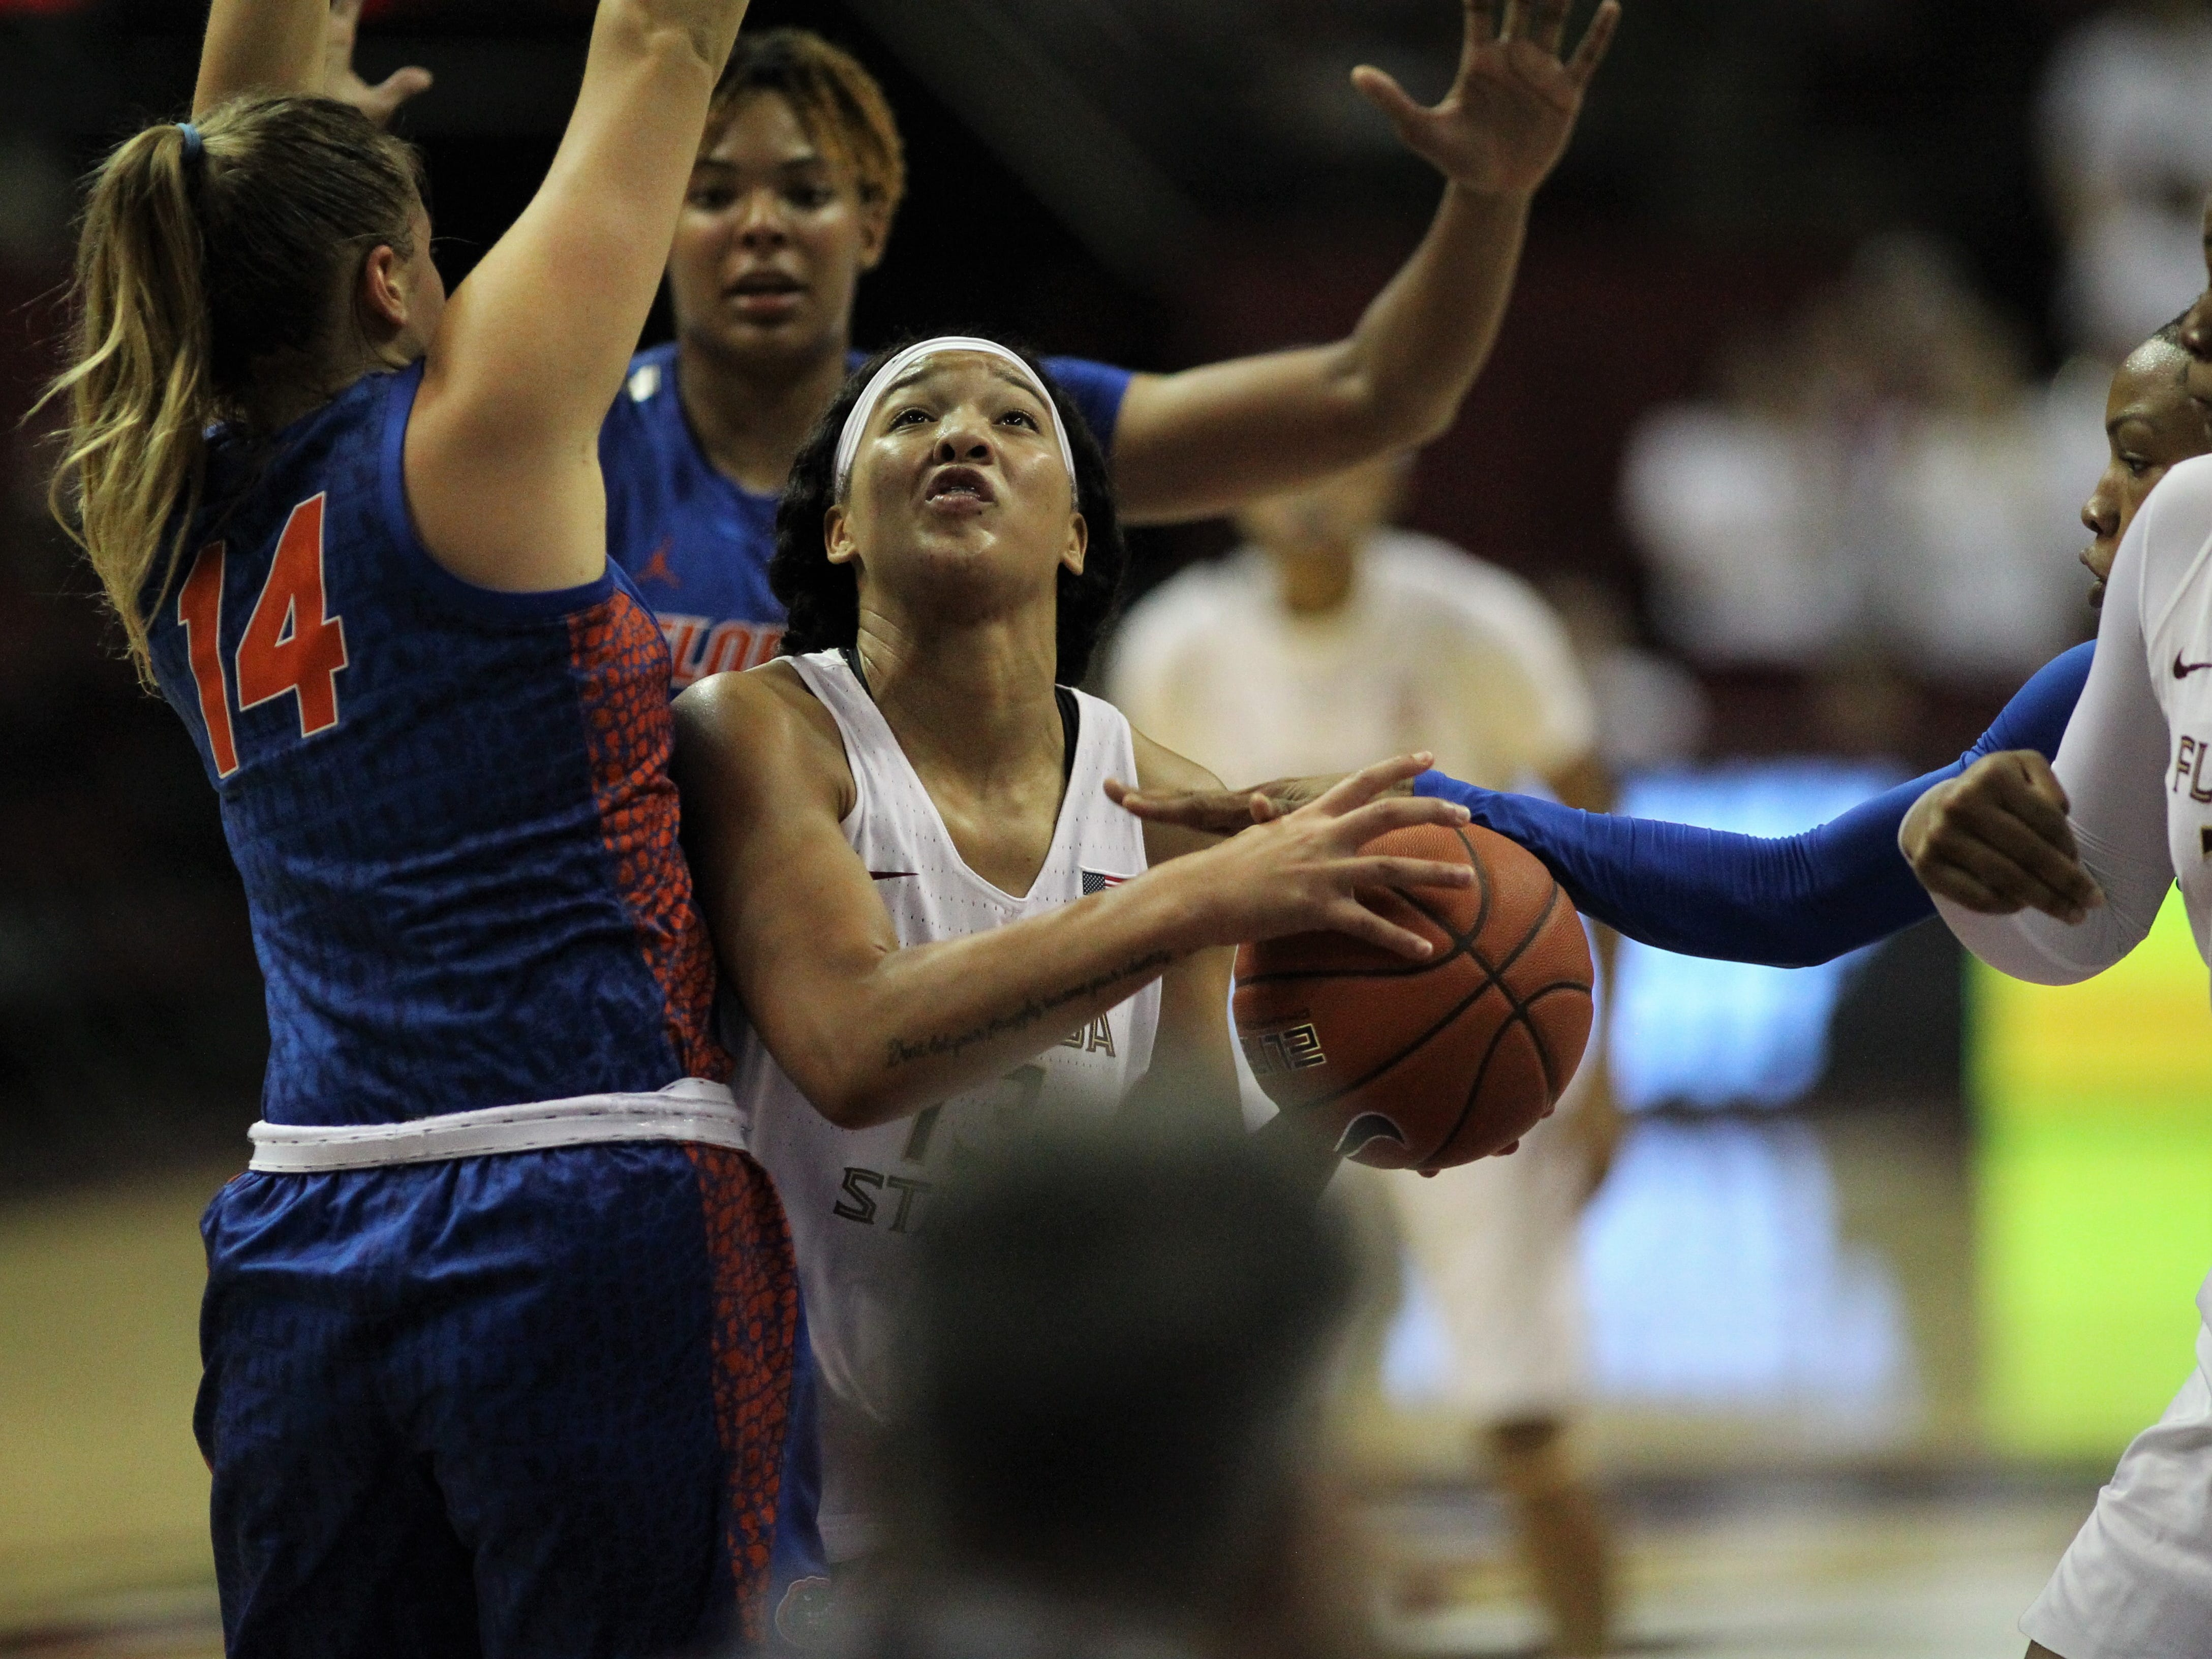 Florida State's Nausia Woolfolk tries to go up for a layup but is fouled during the second half of the Seminoles' game against Florida at the Tucker Civic Center on Nov. 11, 2018.